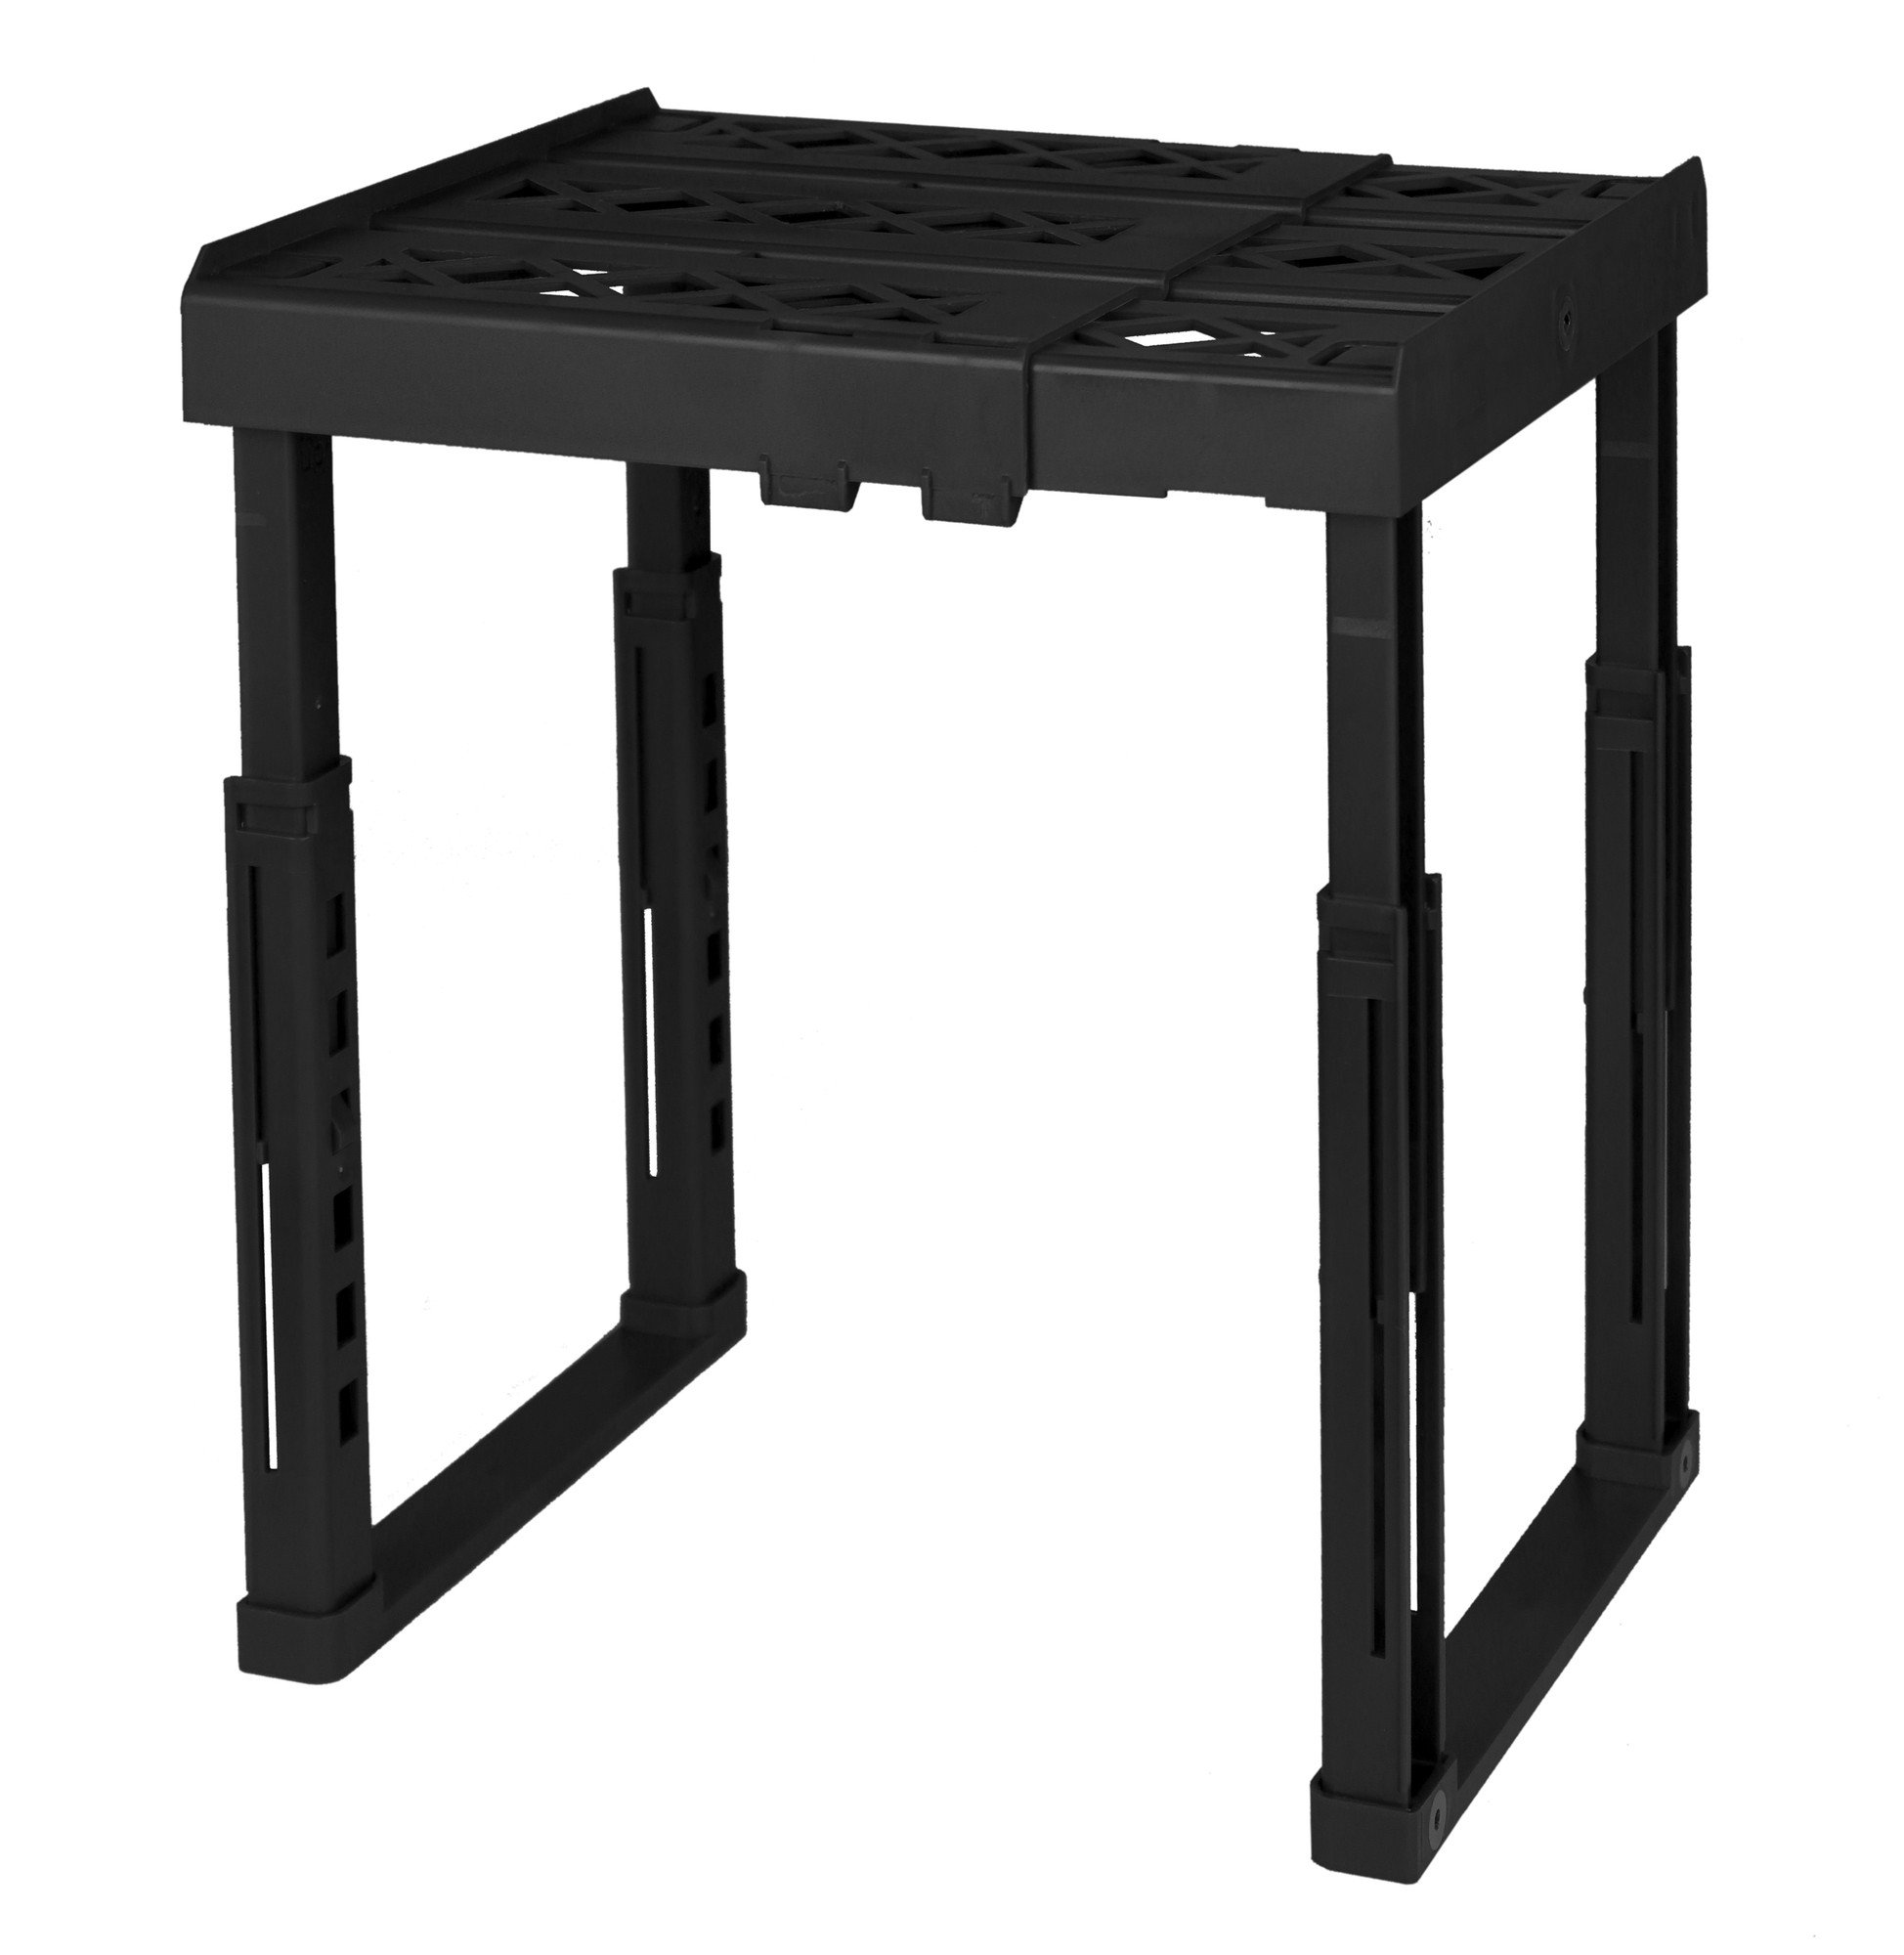 Tools for School Locker Shelf. Adjustable Height and Width. Stackable and Heavy Duty. Holds 40 lbs. per Shelf (Single, Black)